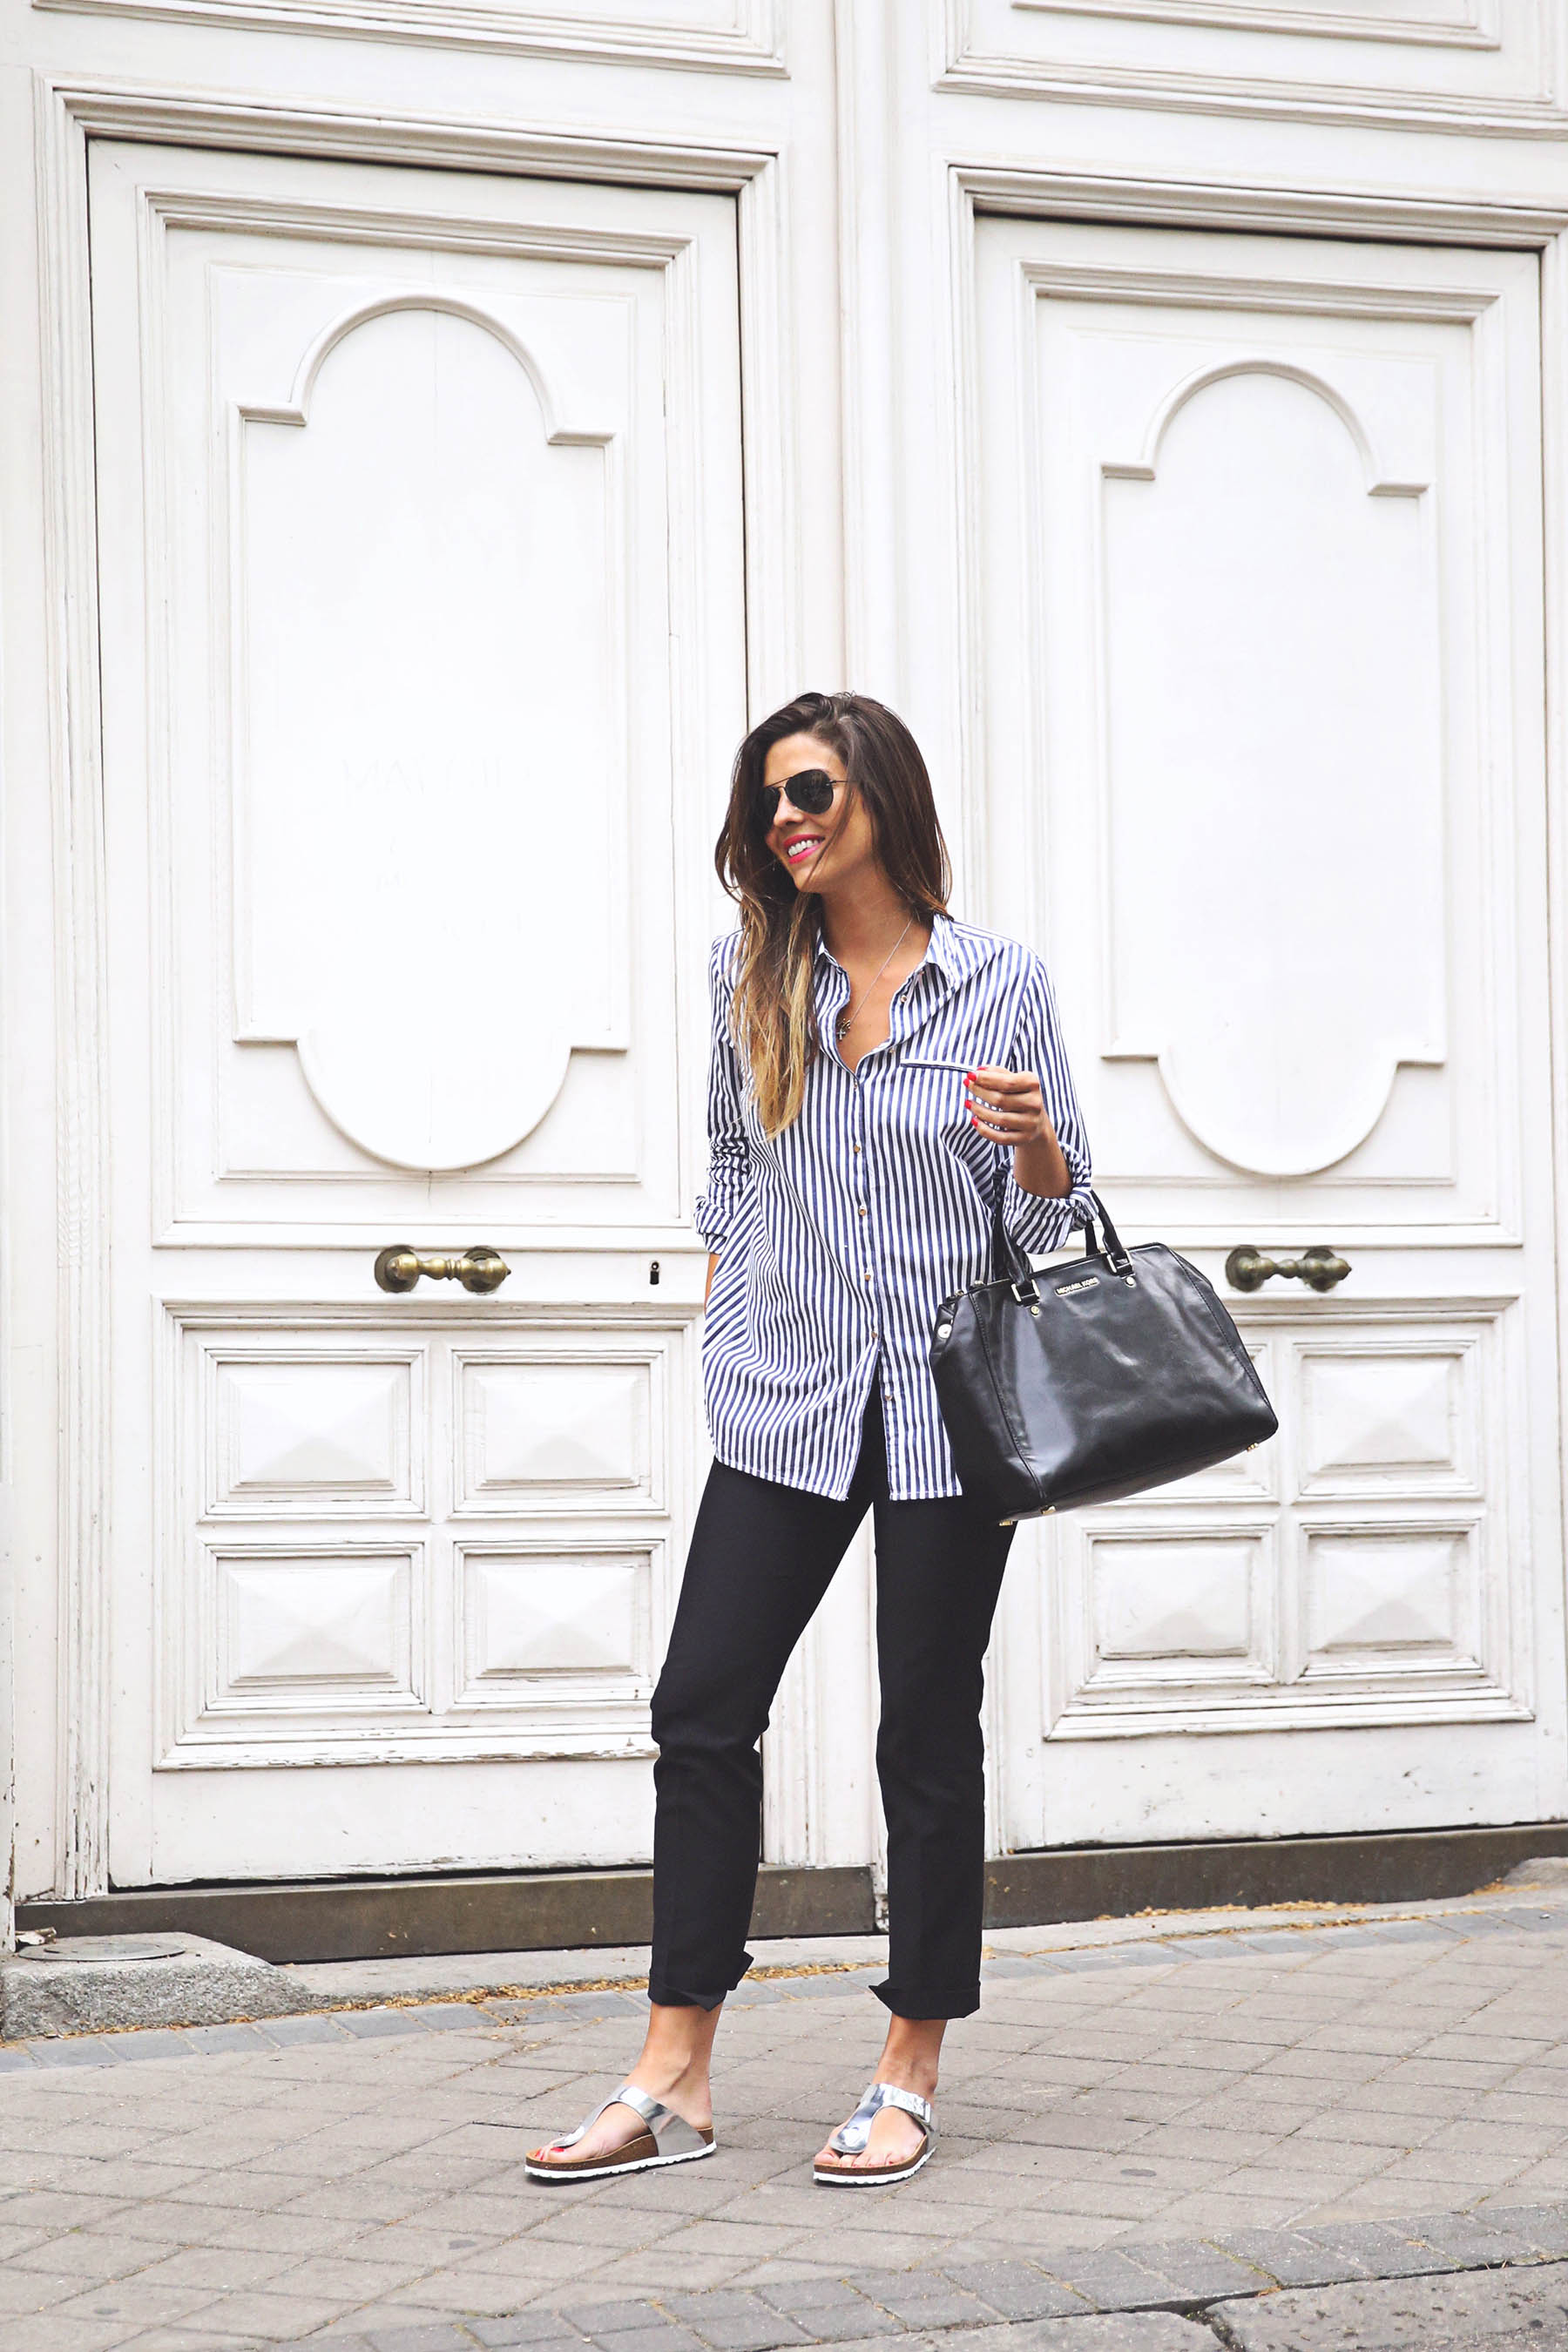 Striped Outfits 2015: Natalia Cabezas is wearing a navy Asos striped shirt